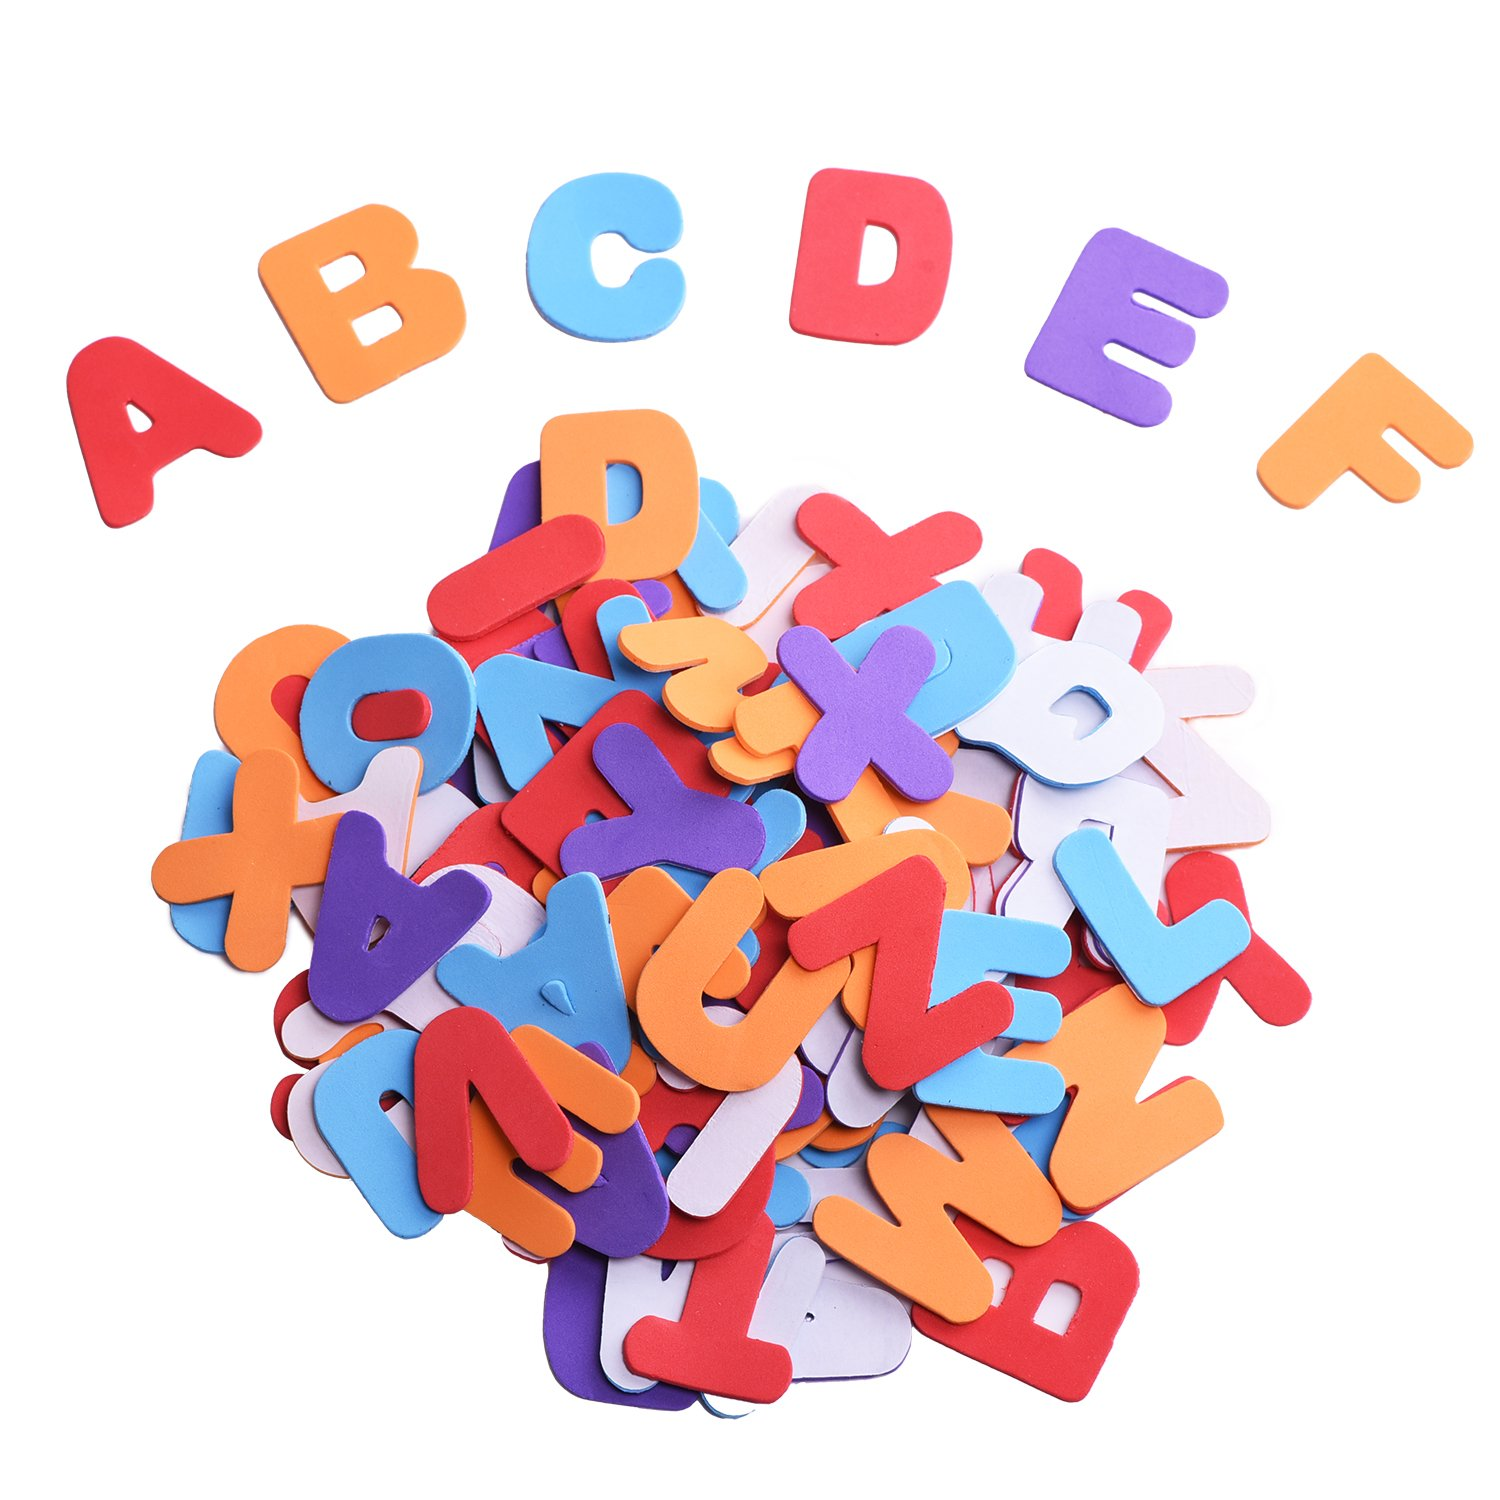 Self-adhesive Foam Stickers Letters, Assorted Colors, 104 Pieces Outus